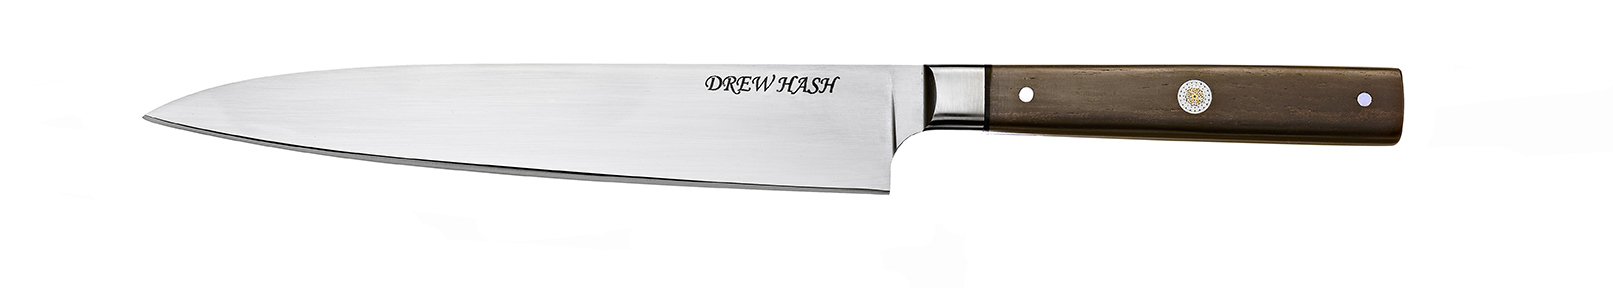 11.5-in. slicer, 7-in. AEB-L blade, 416 stainless bolsters, African blackwood handle, mosaic pins